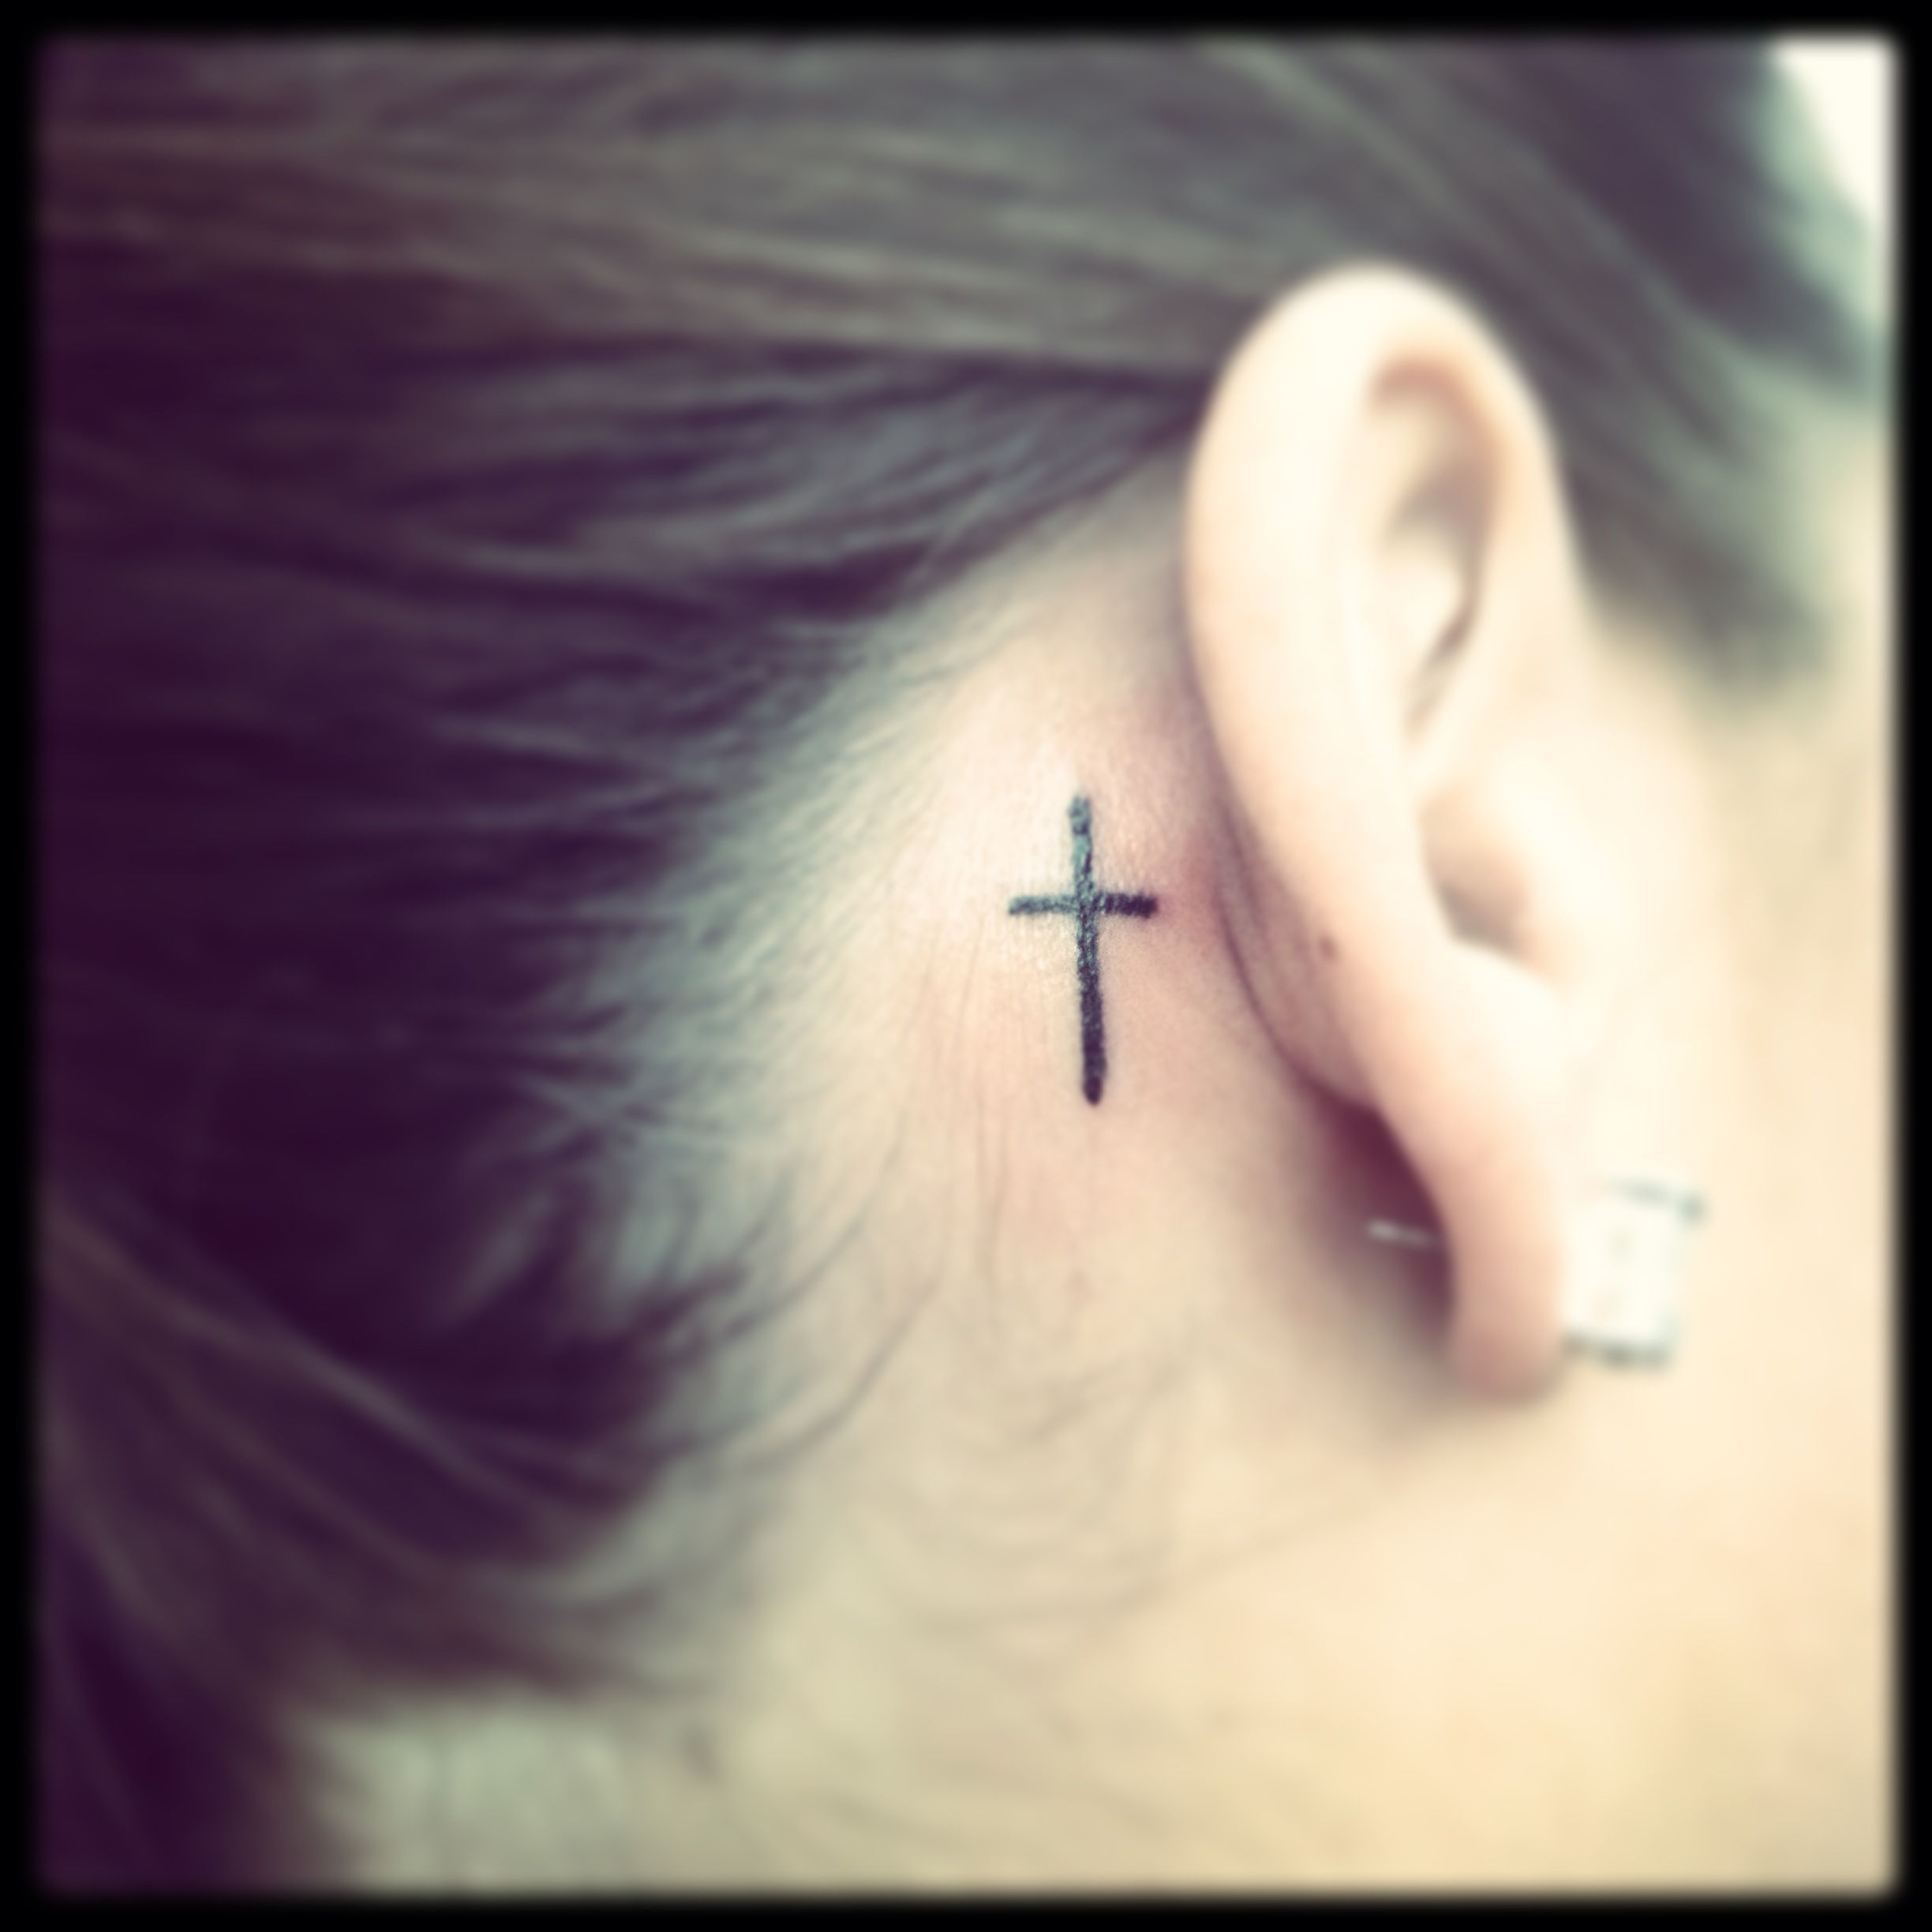 Simple Small Cross Tattoos Behind Ear Ideas